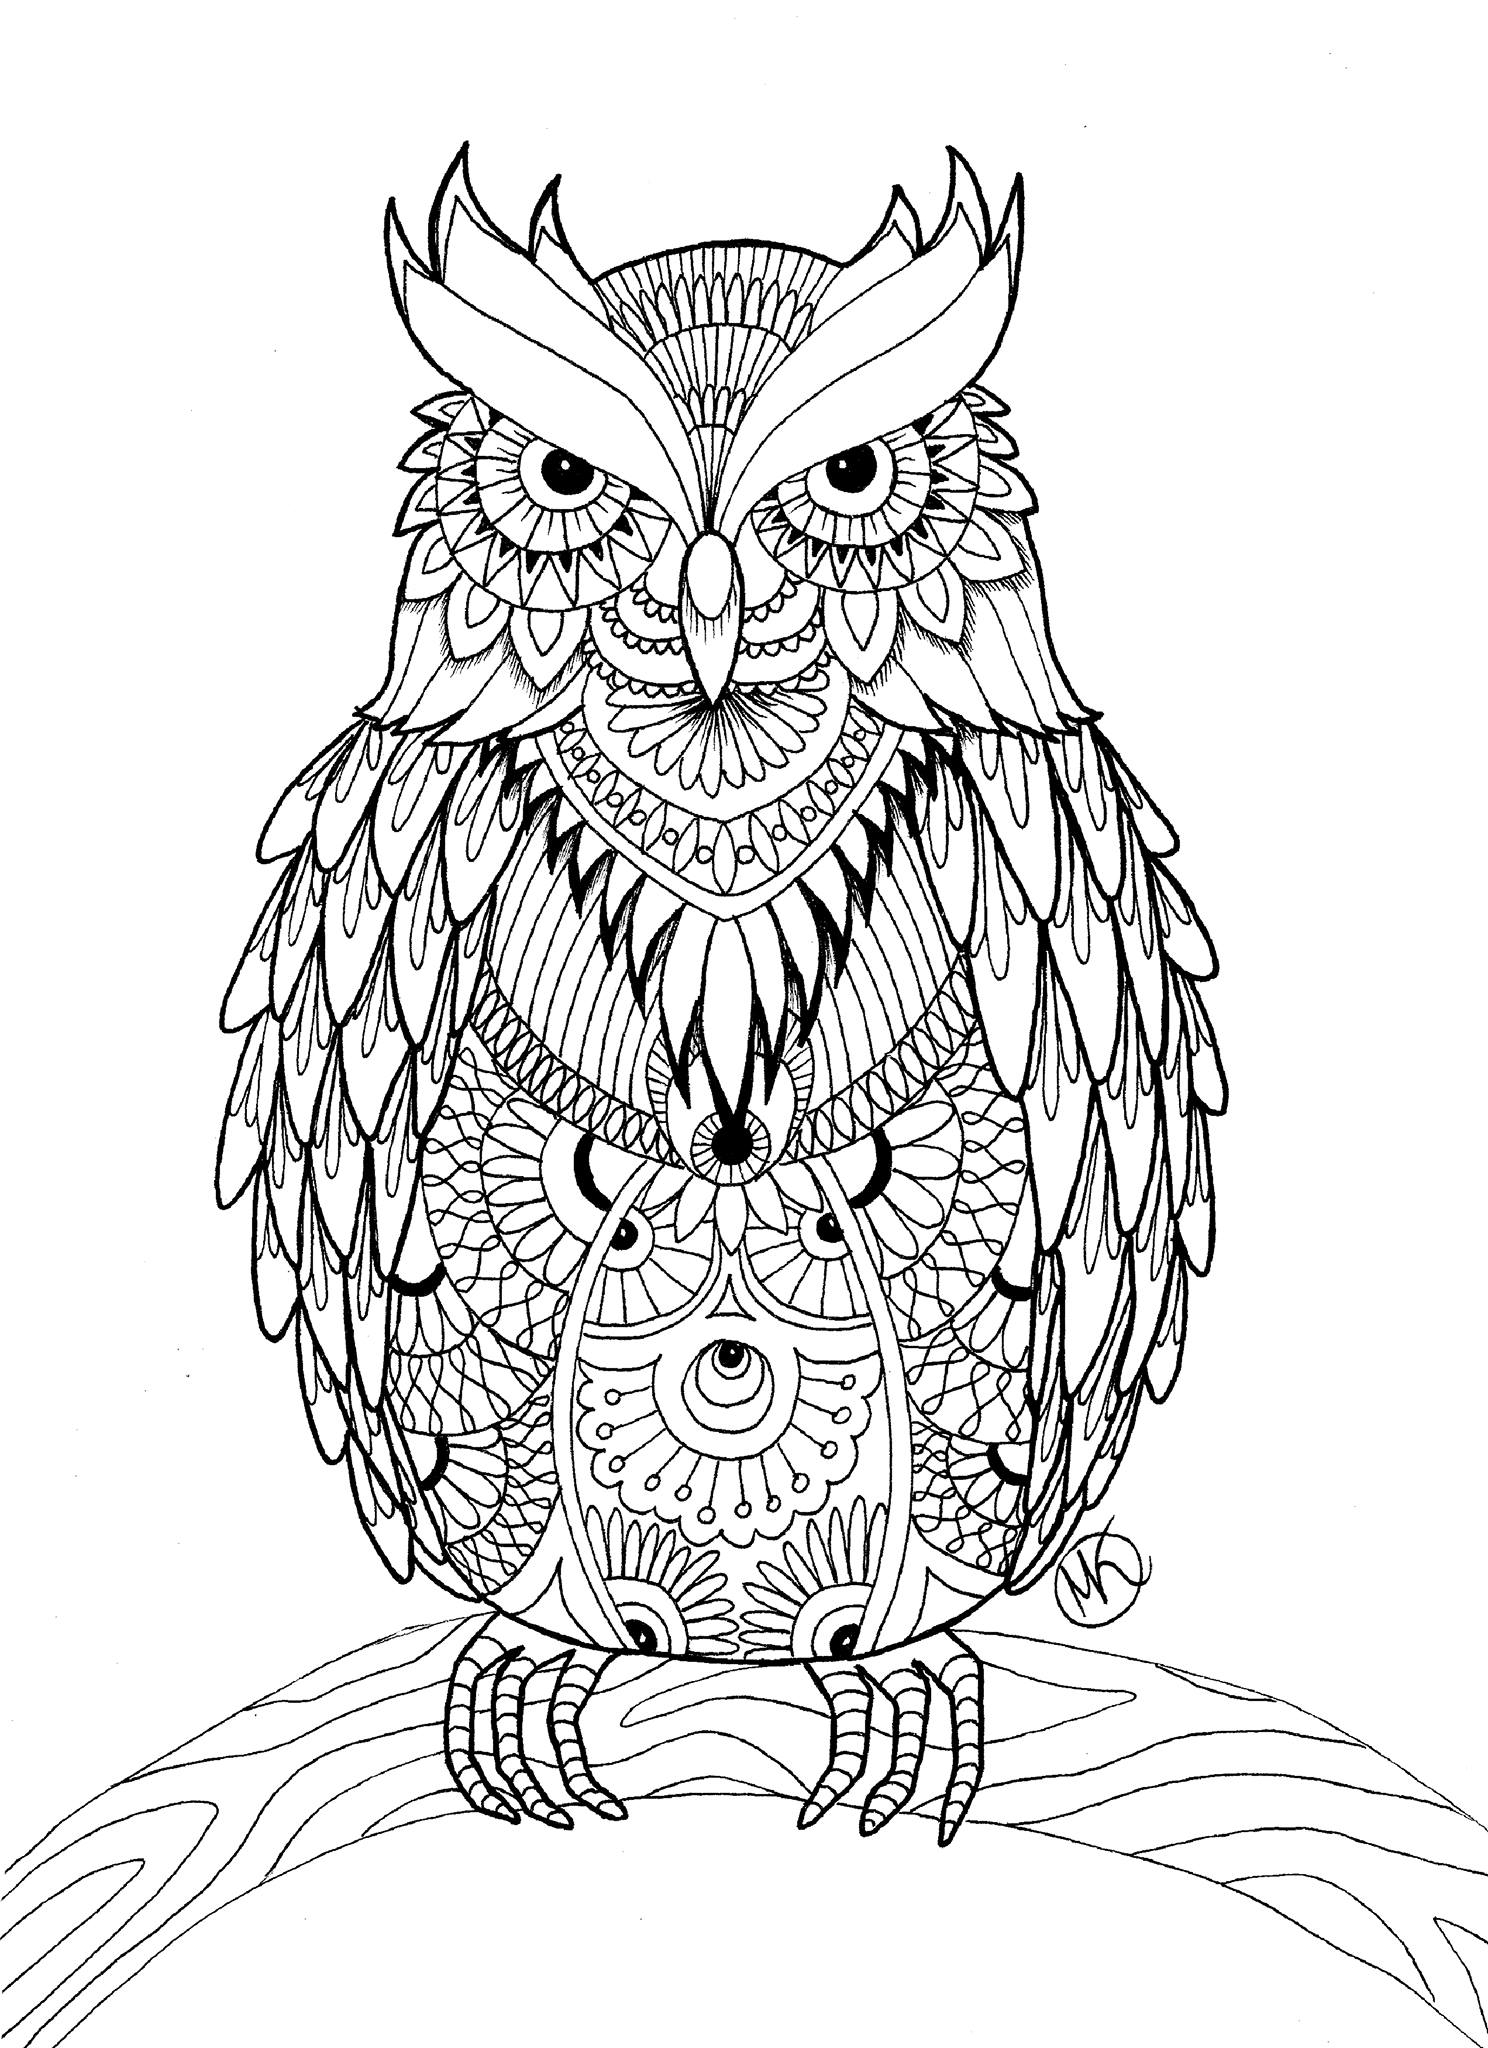 coloring sheet for adults color my world nwadg for coloring sheet adults